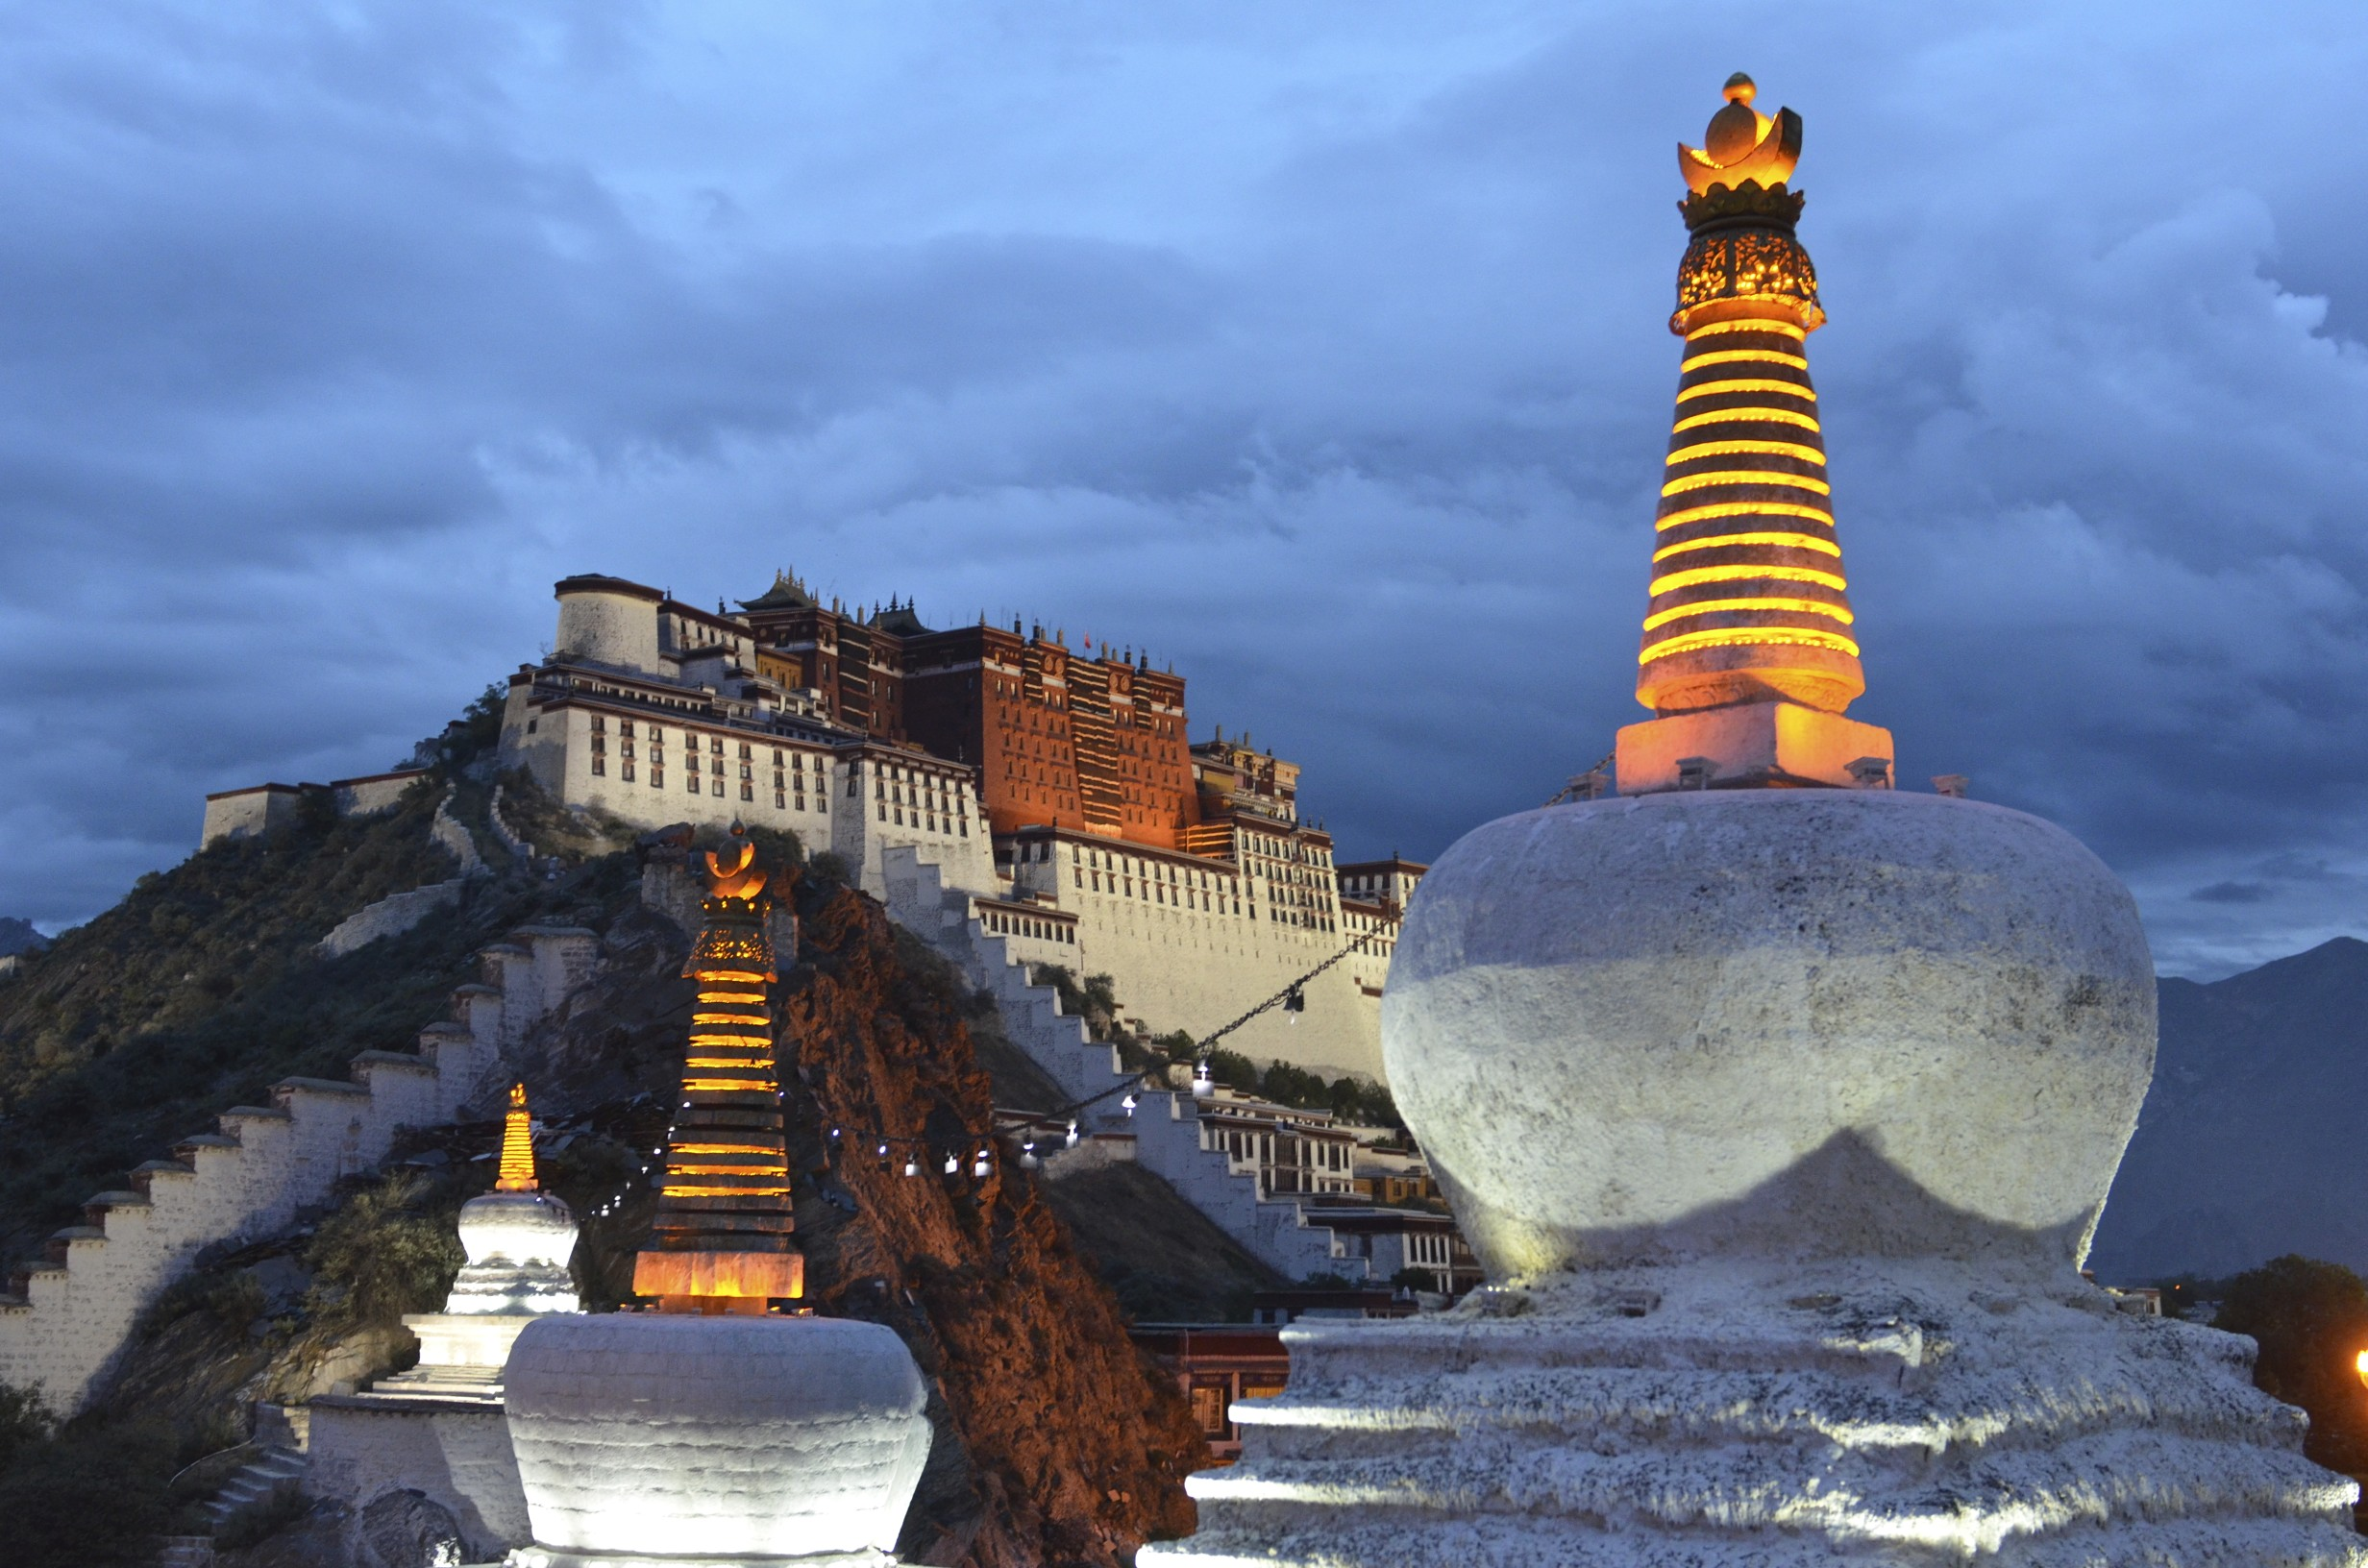 The Potala Palace in Lhasa, Tibet was the chief residence of the Dalai ...